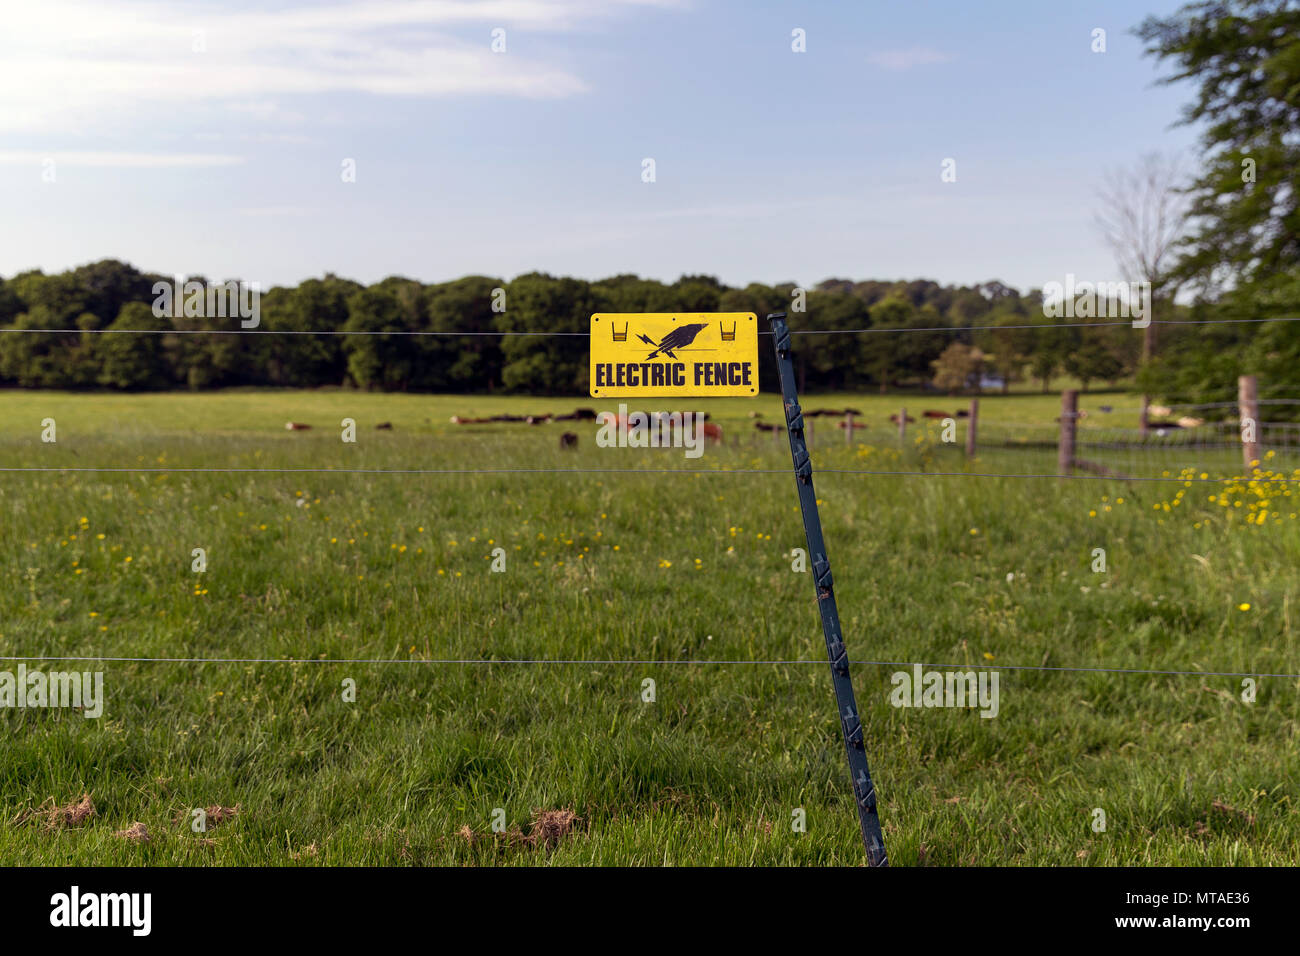 Agricultural Fencing Stock Photos Electric Accessories 7 Strand Fence Wire An In A Field Electrified Barrier